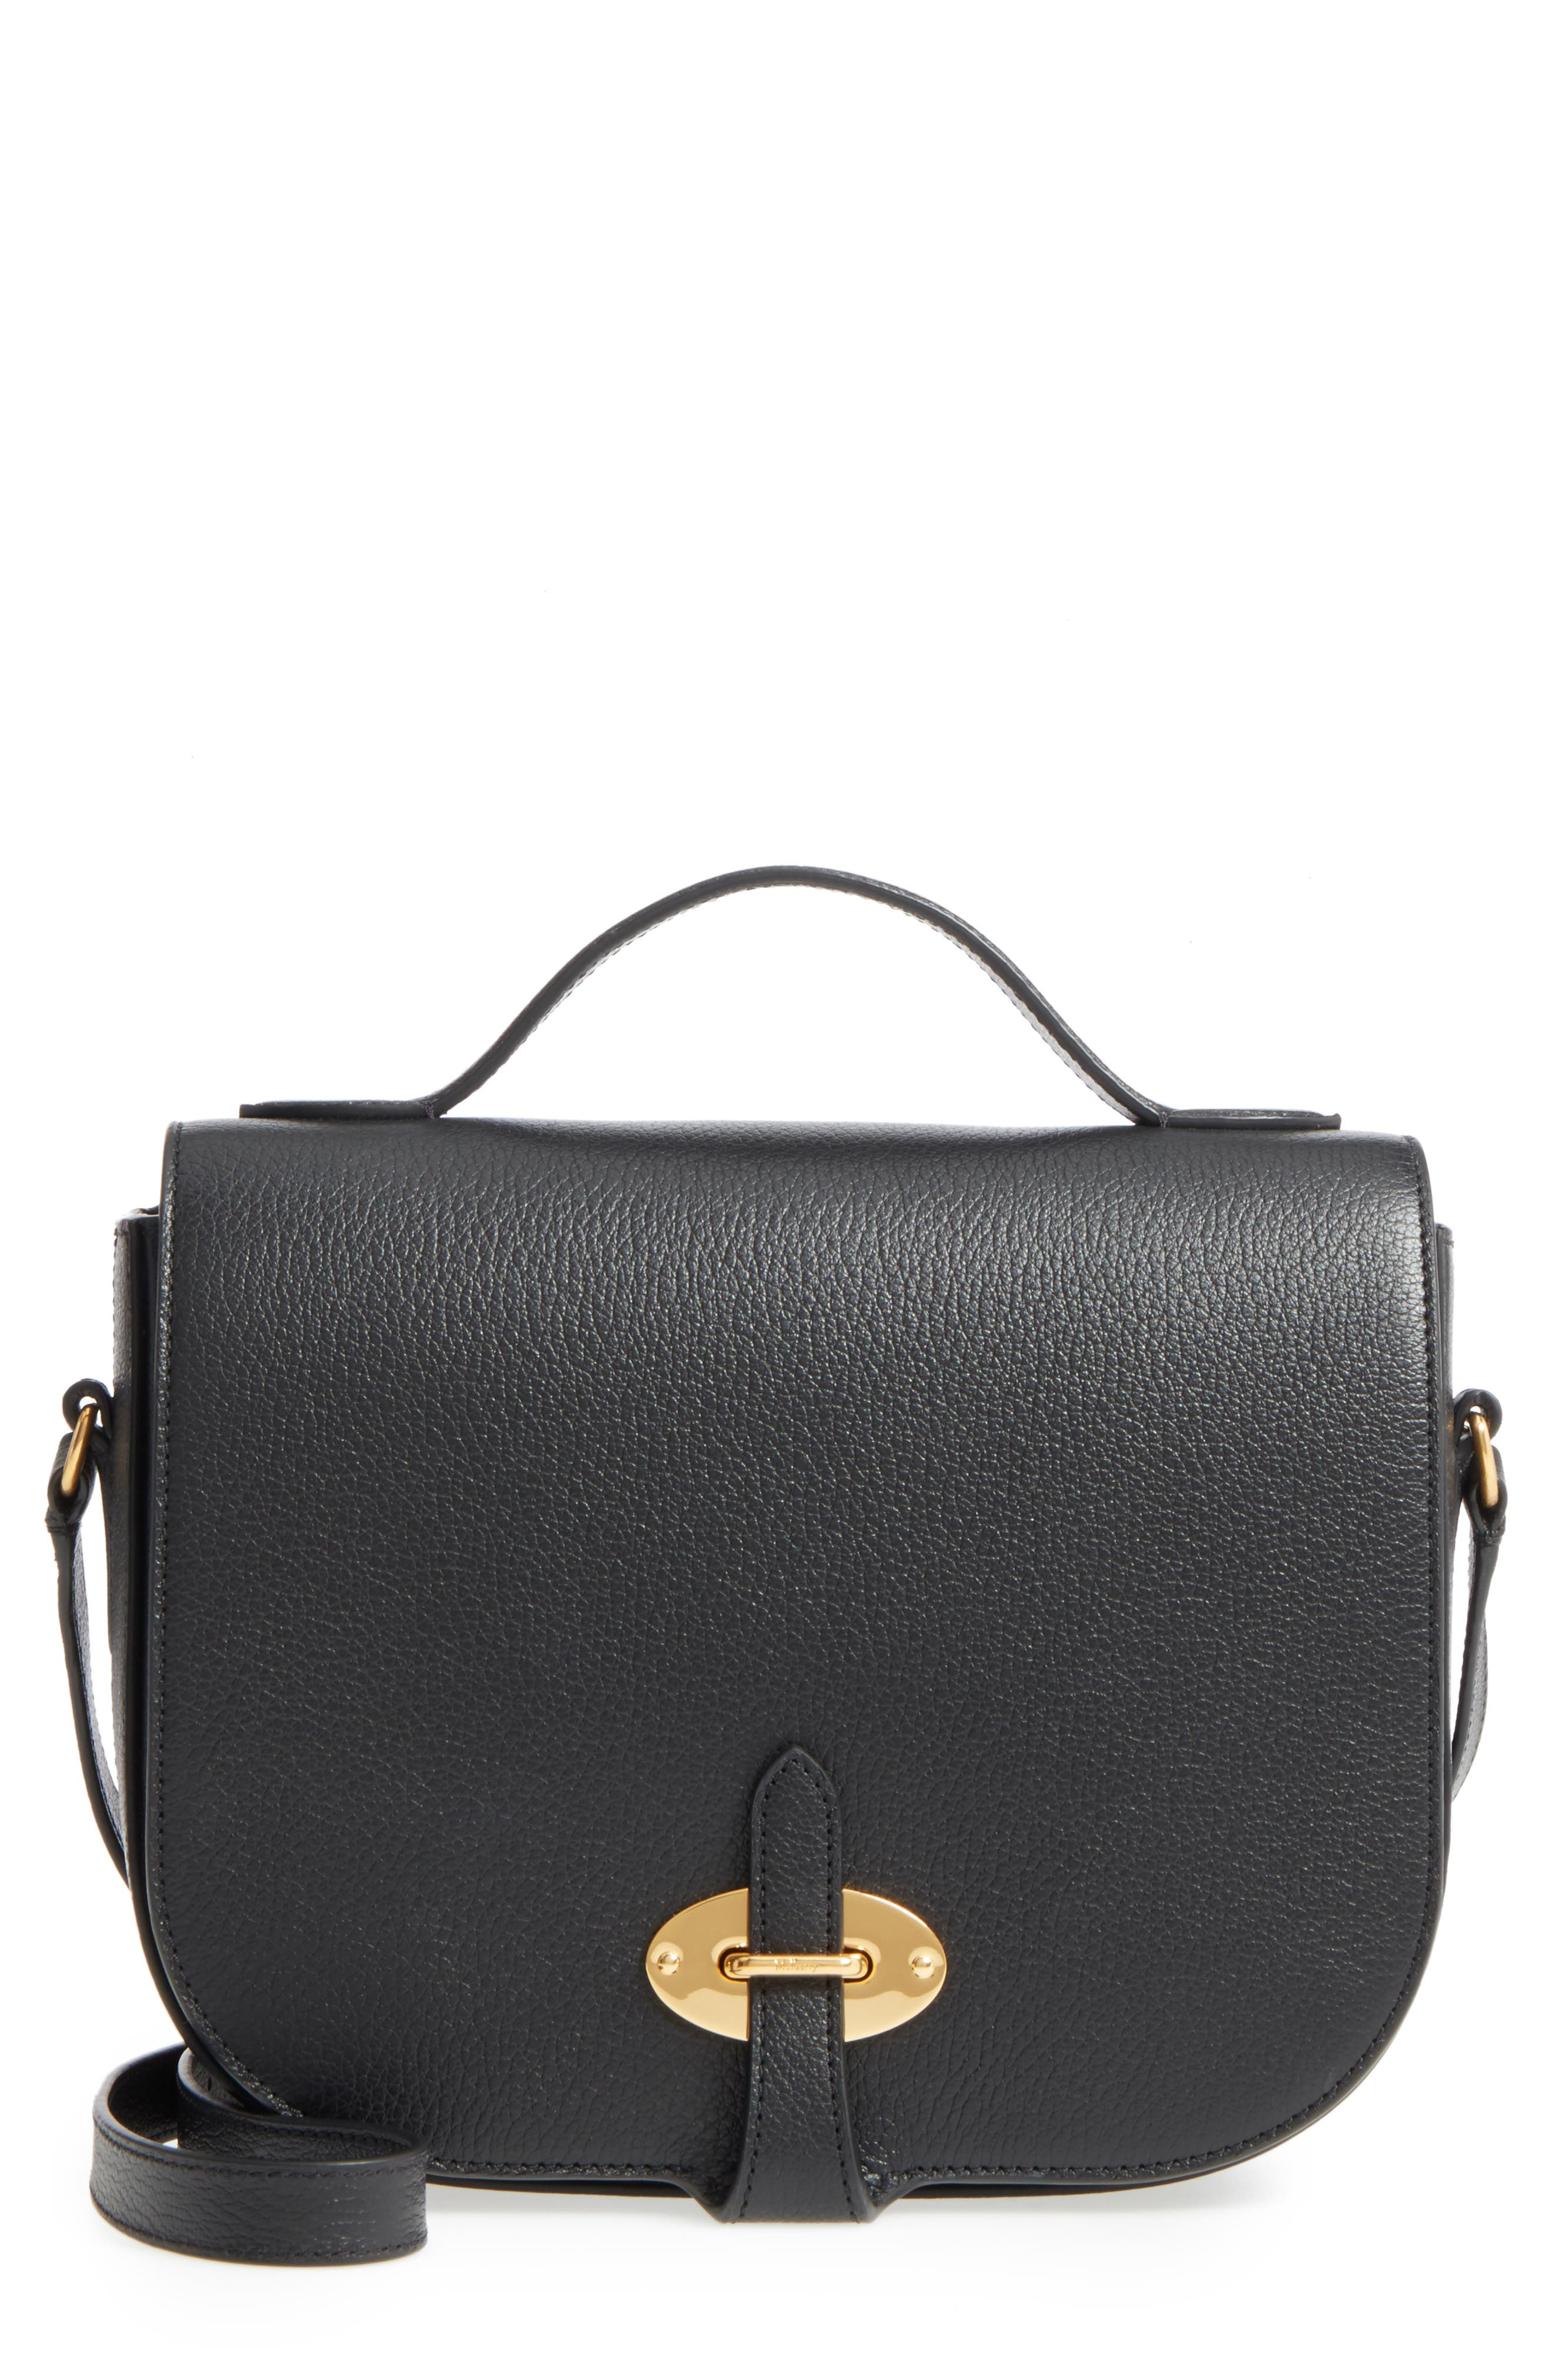 Alternate Image 1 Selected - Mulberry Tenby Calfskin Leather Crossbody Bag